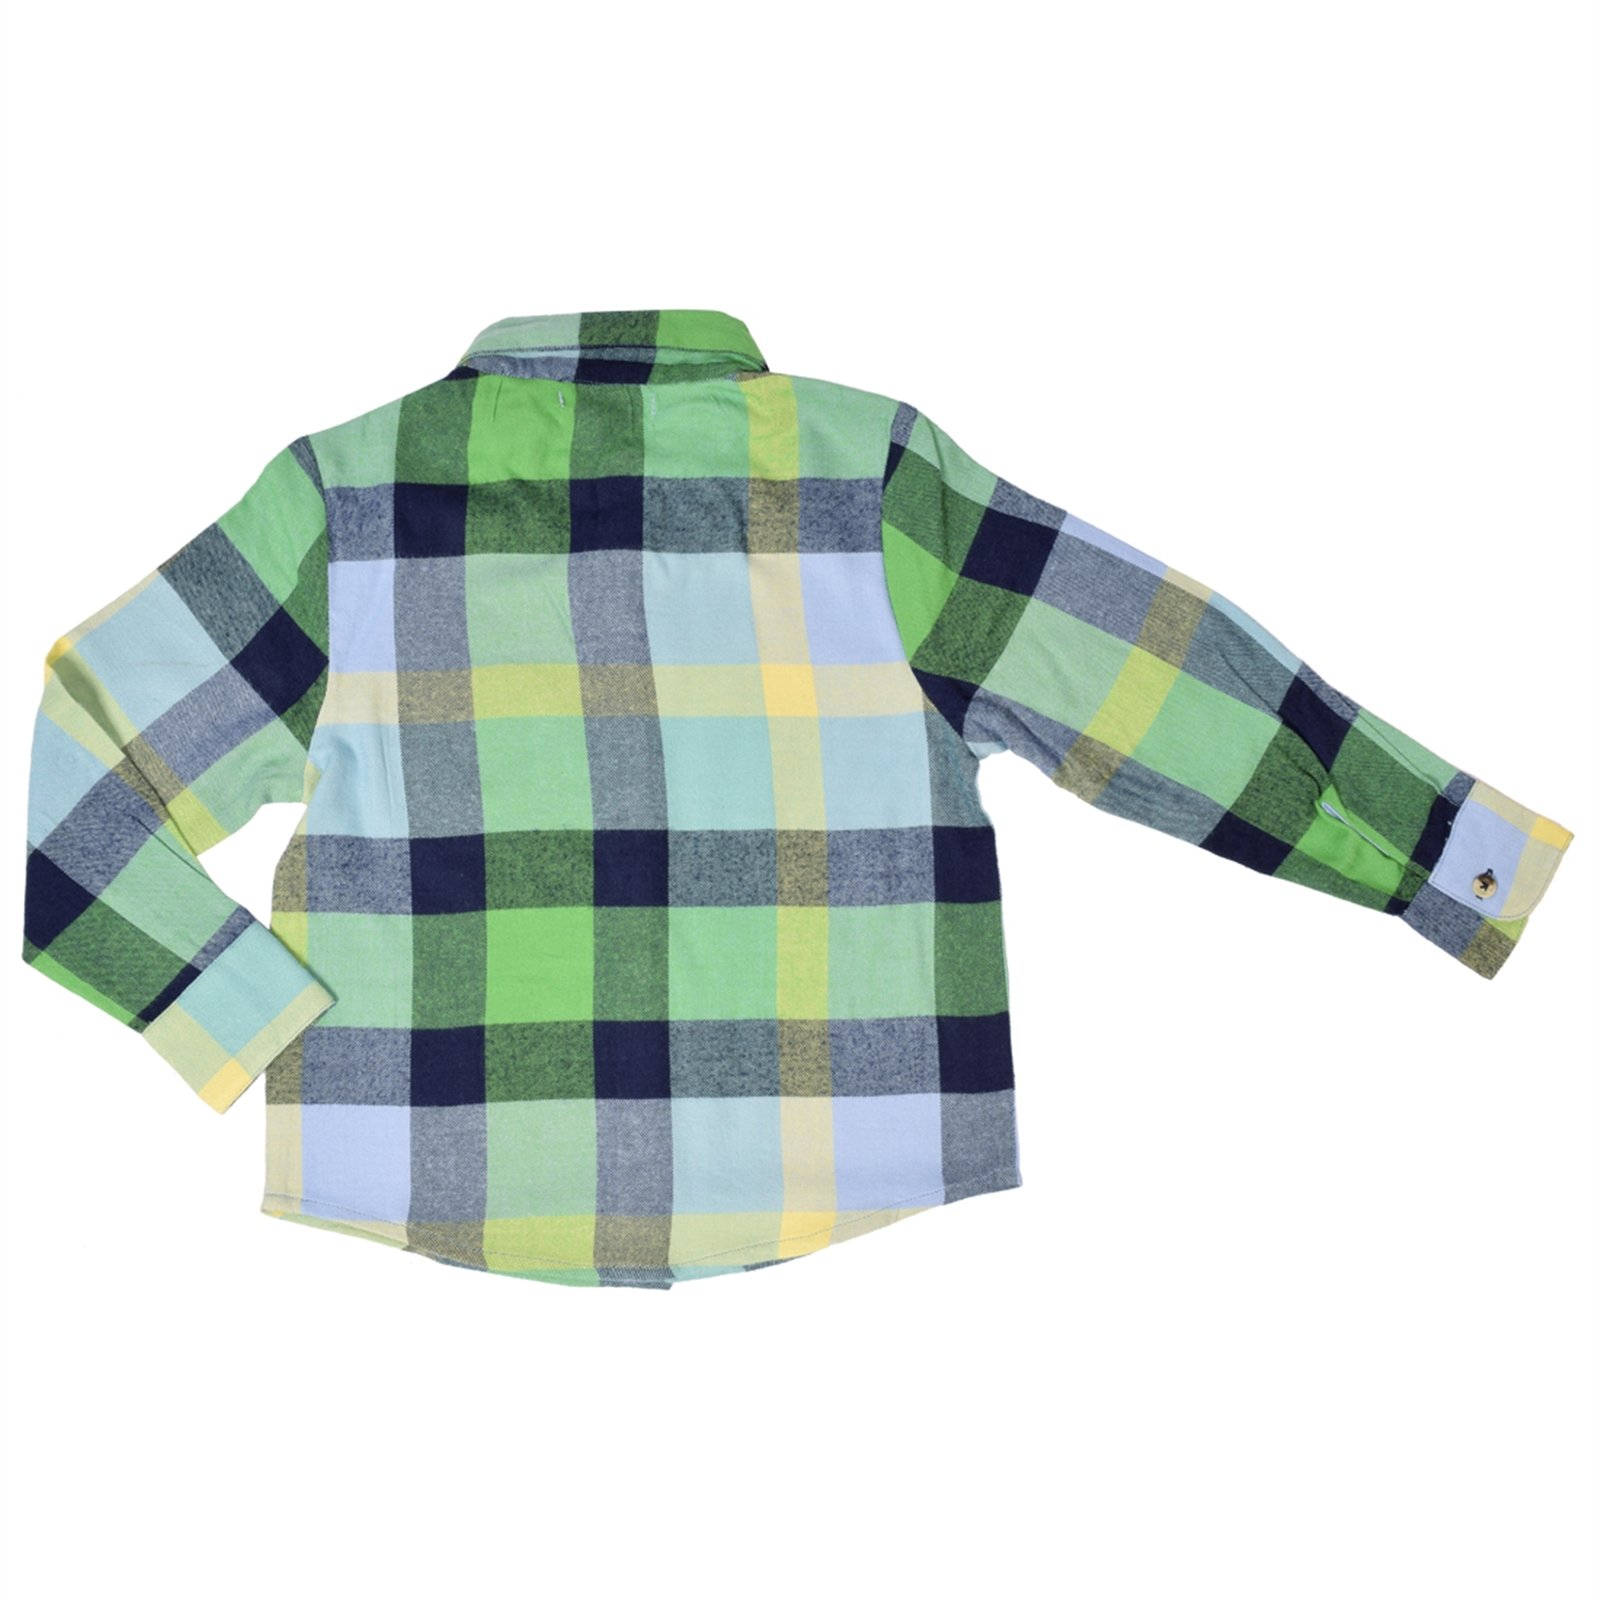 CrayonFlakes Green Cotton Long Sleeve Shirt with Checkered Design